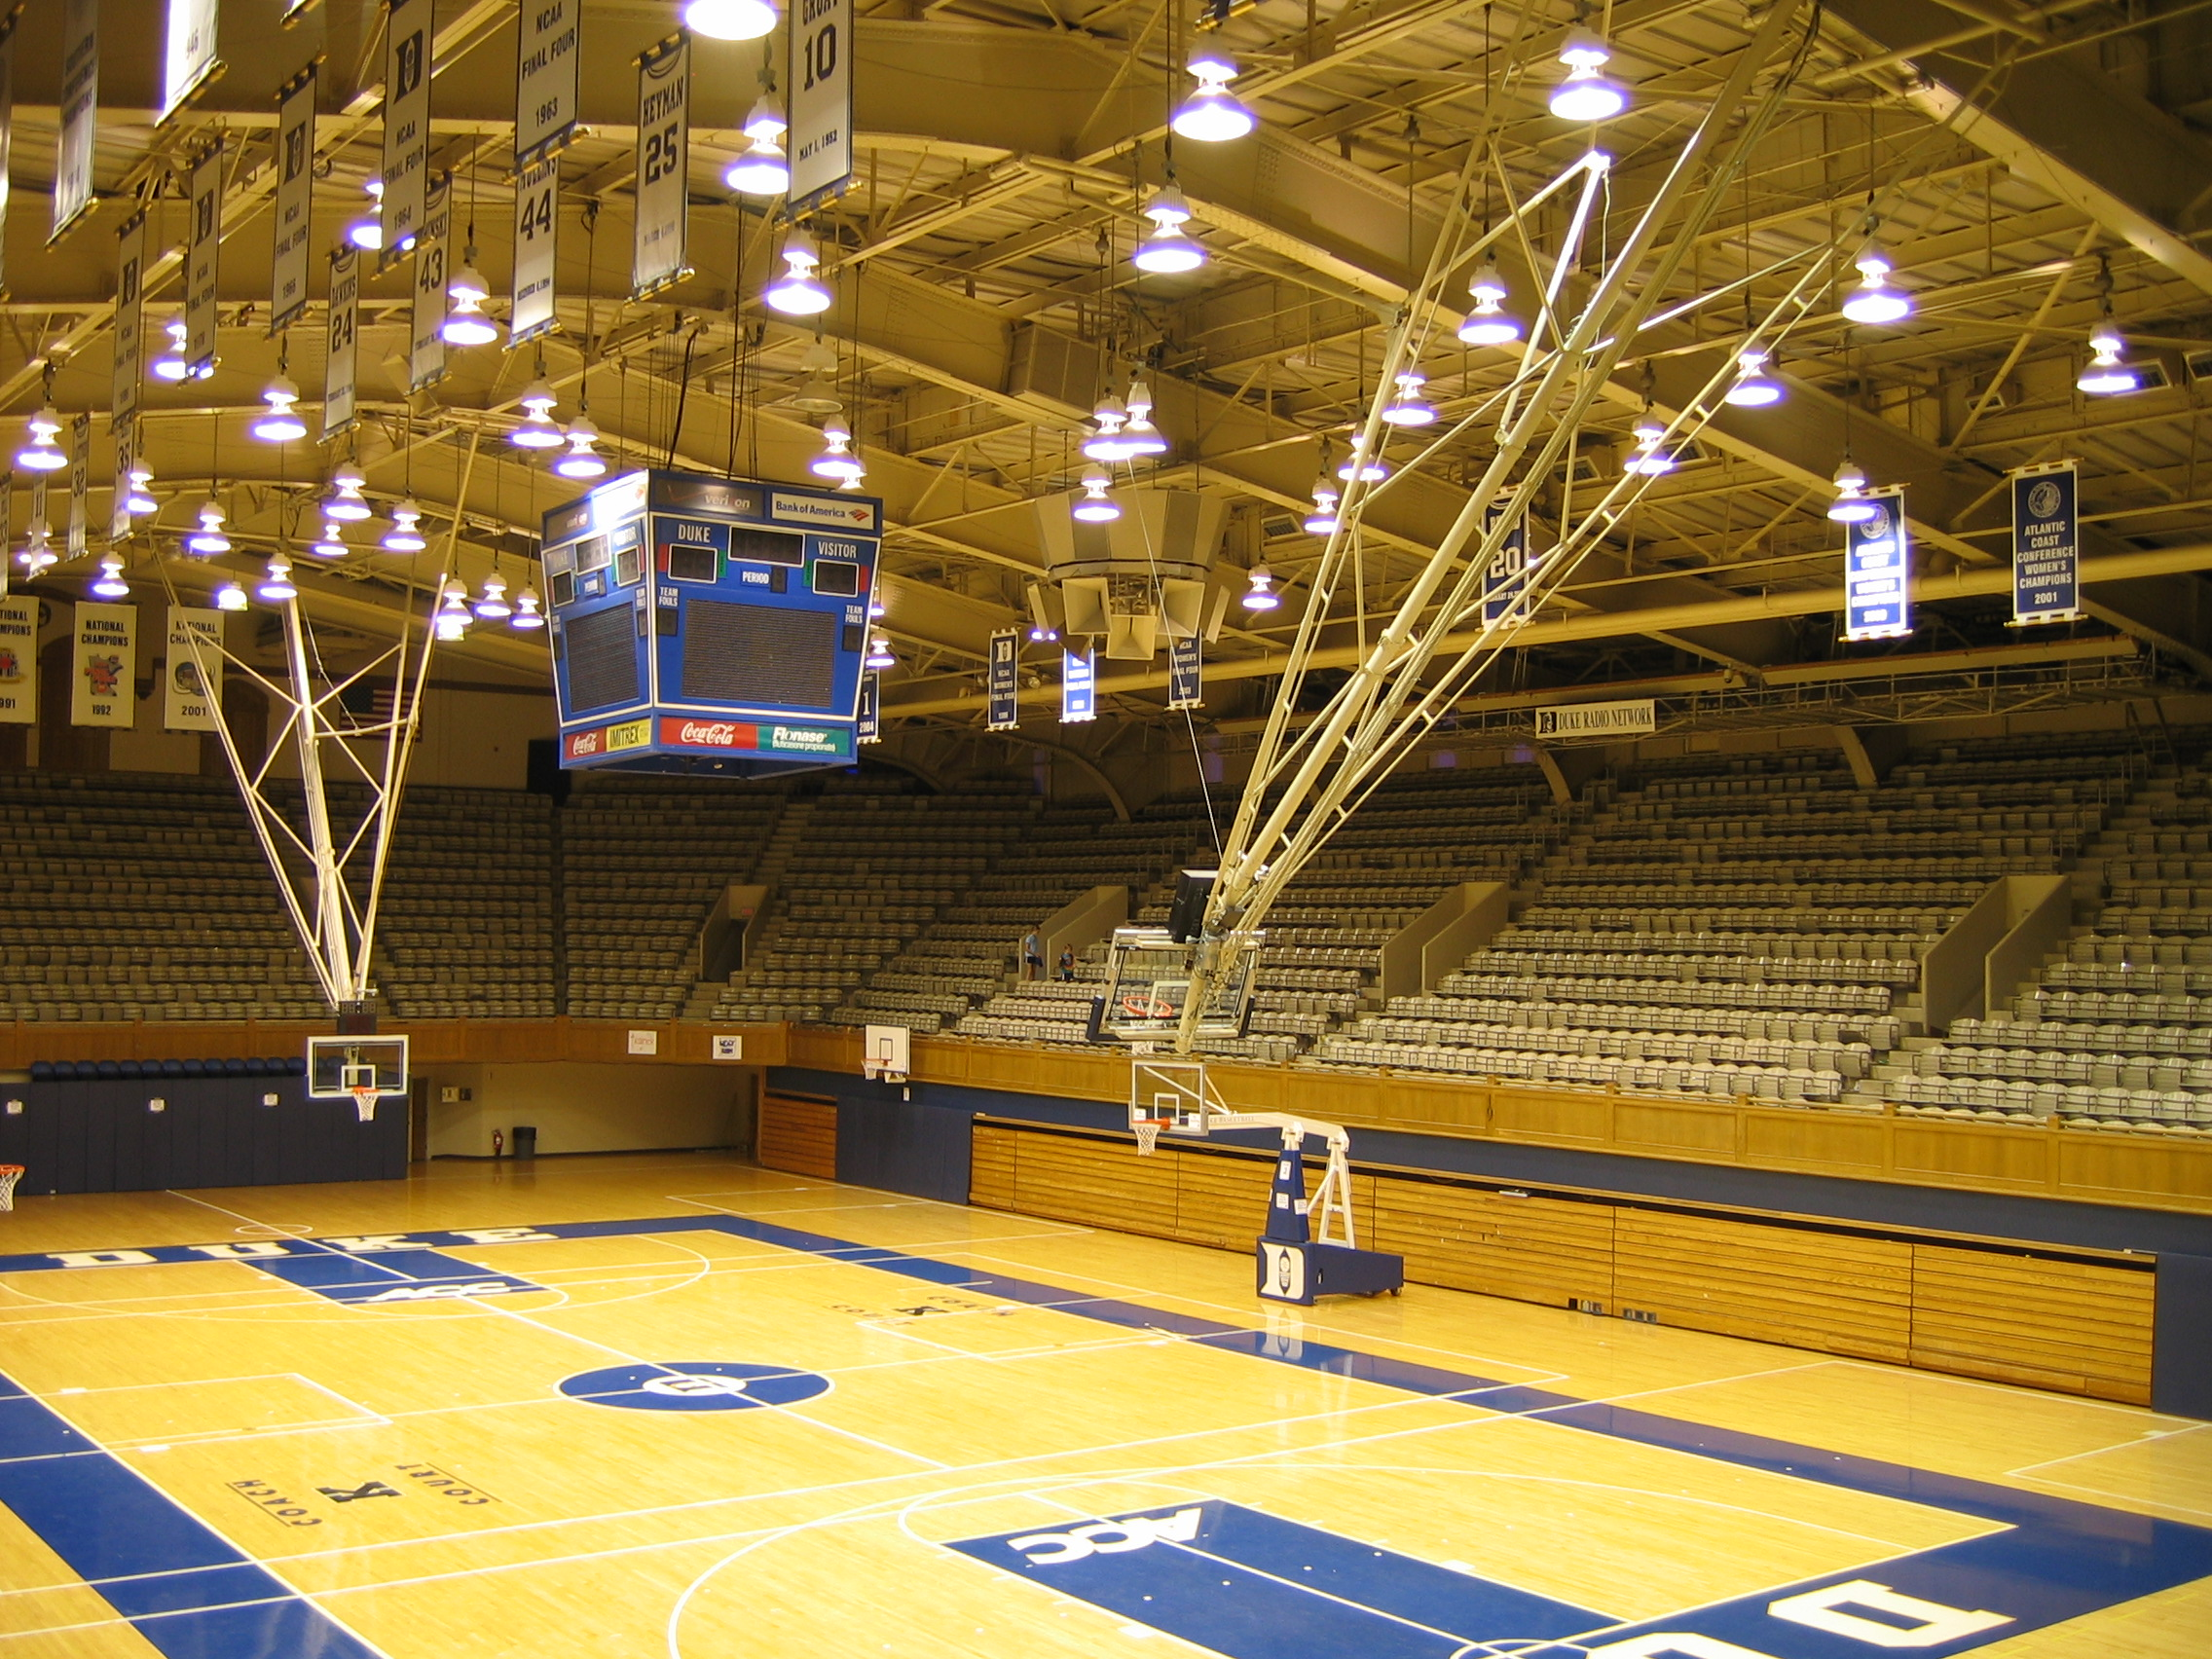 File:Cameron Indoor Stadium interior.jpg - Wikimedia Commons